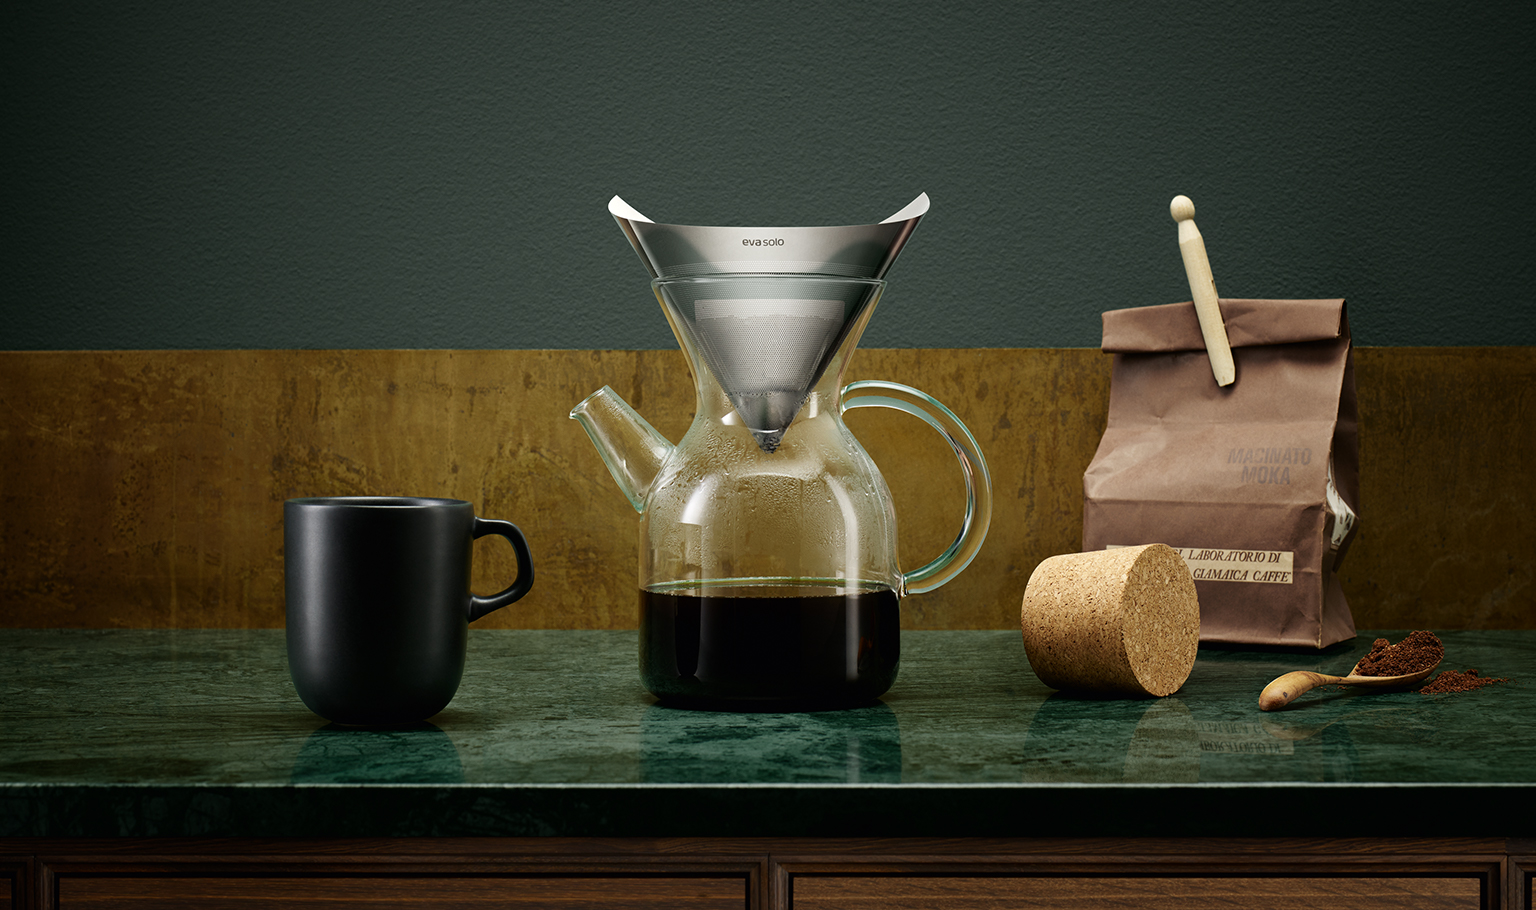 <p>The new coffee-maker uses the pour-over method, which brings out the best in the coffee.</p>